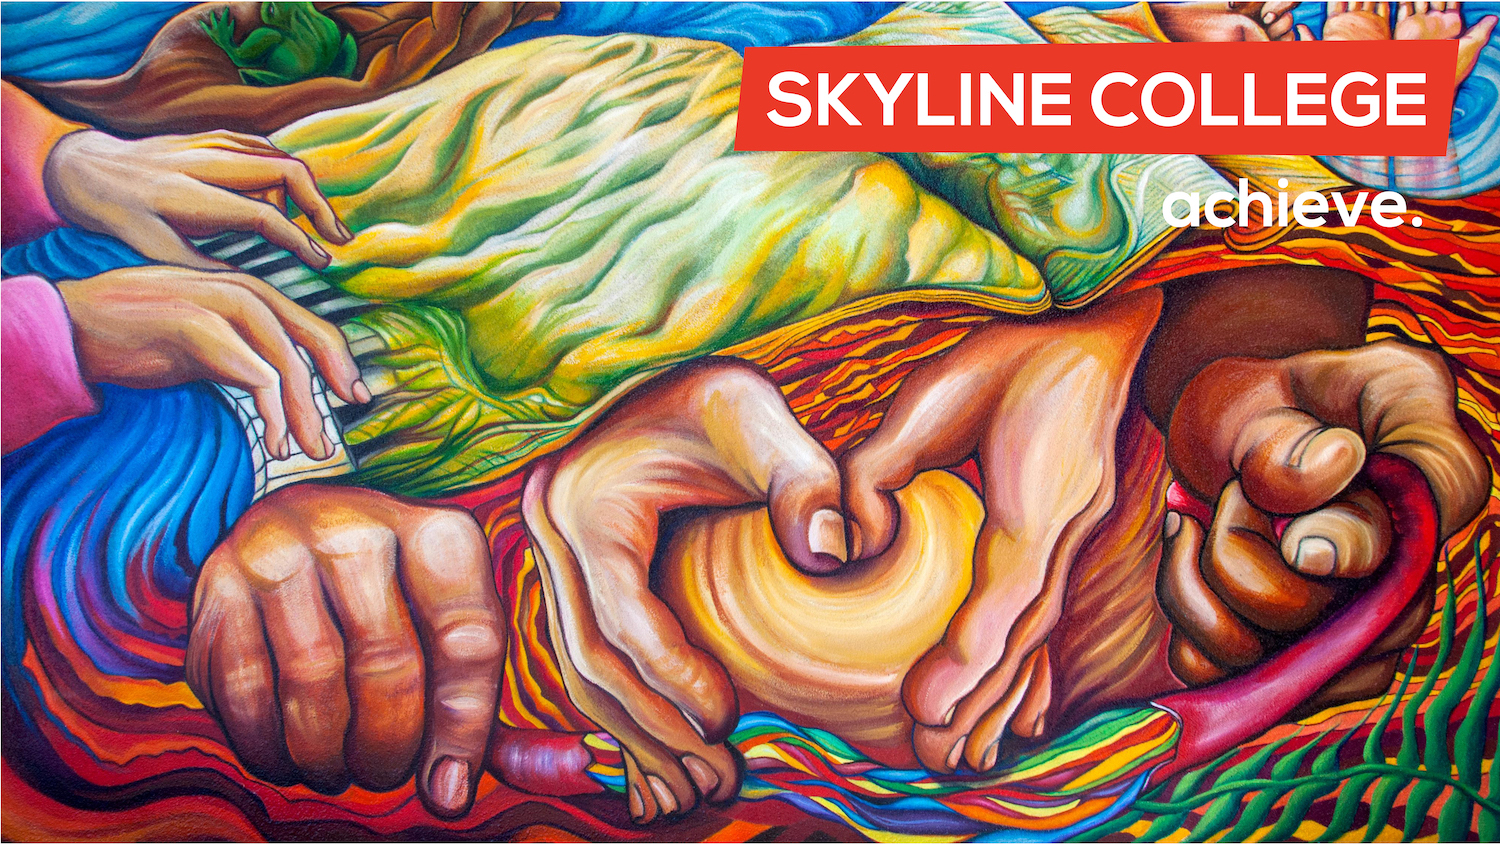 Skyline mural with achieve on it